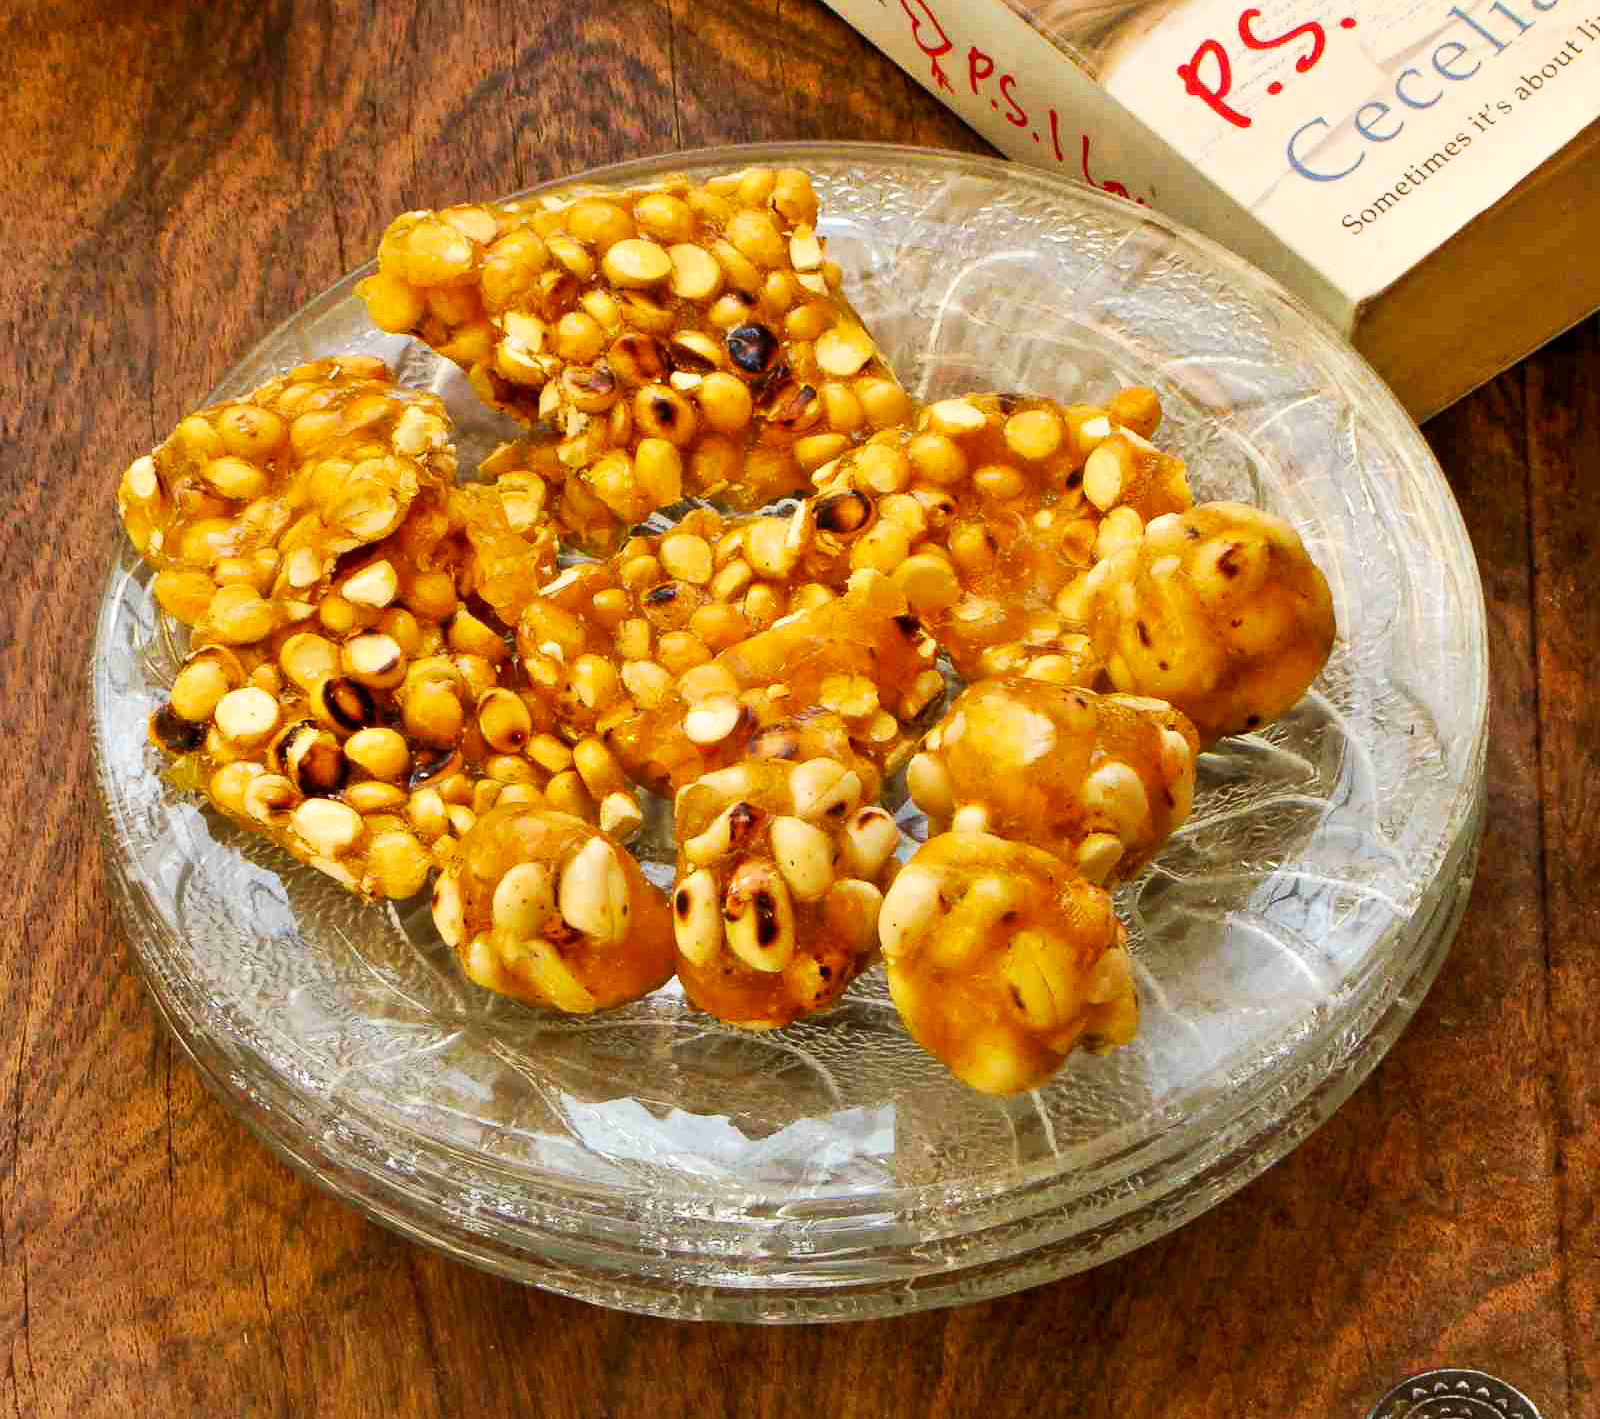 Roasted Peanut & Fried Gram Chikki Recipe